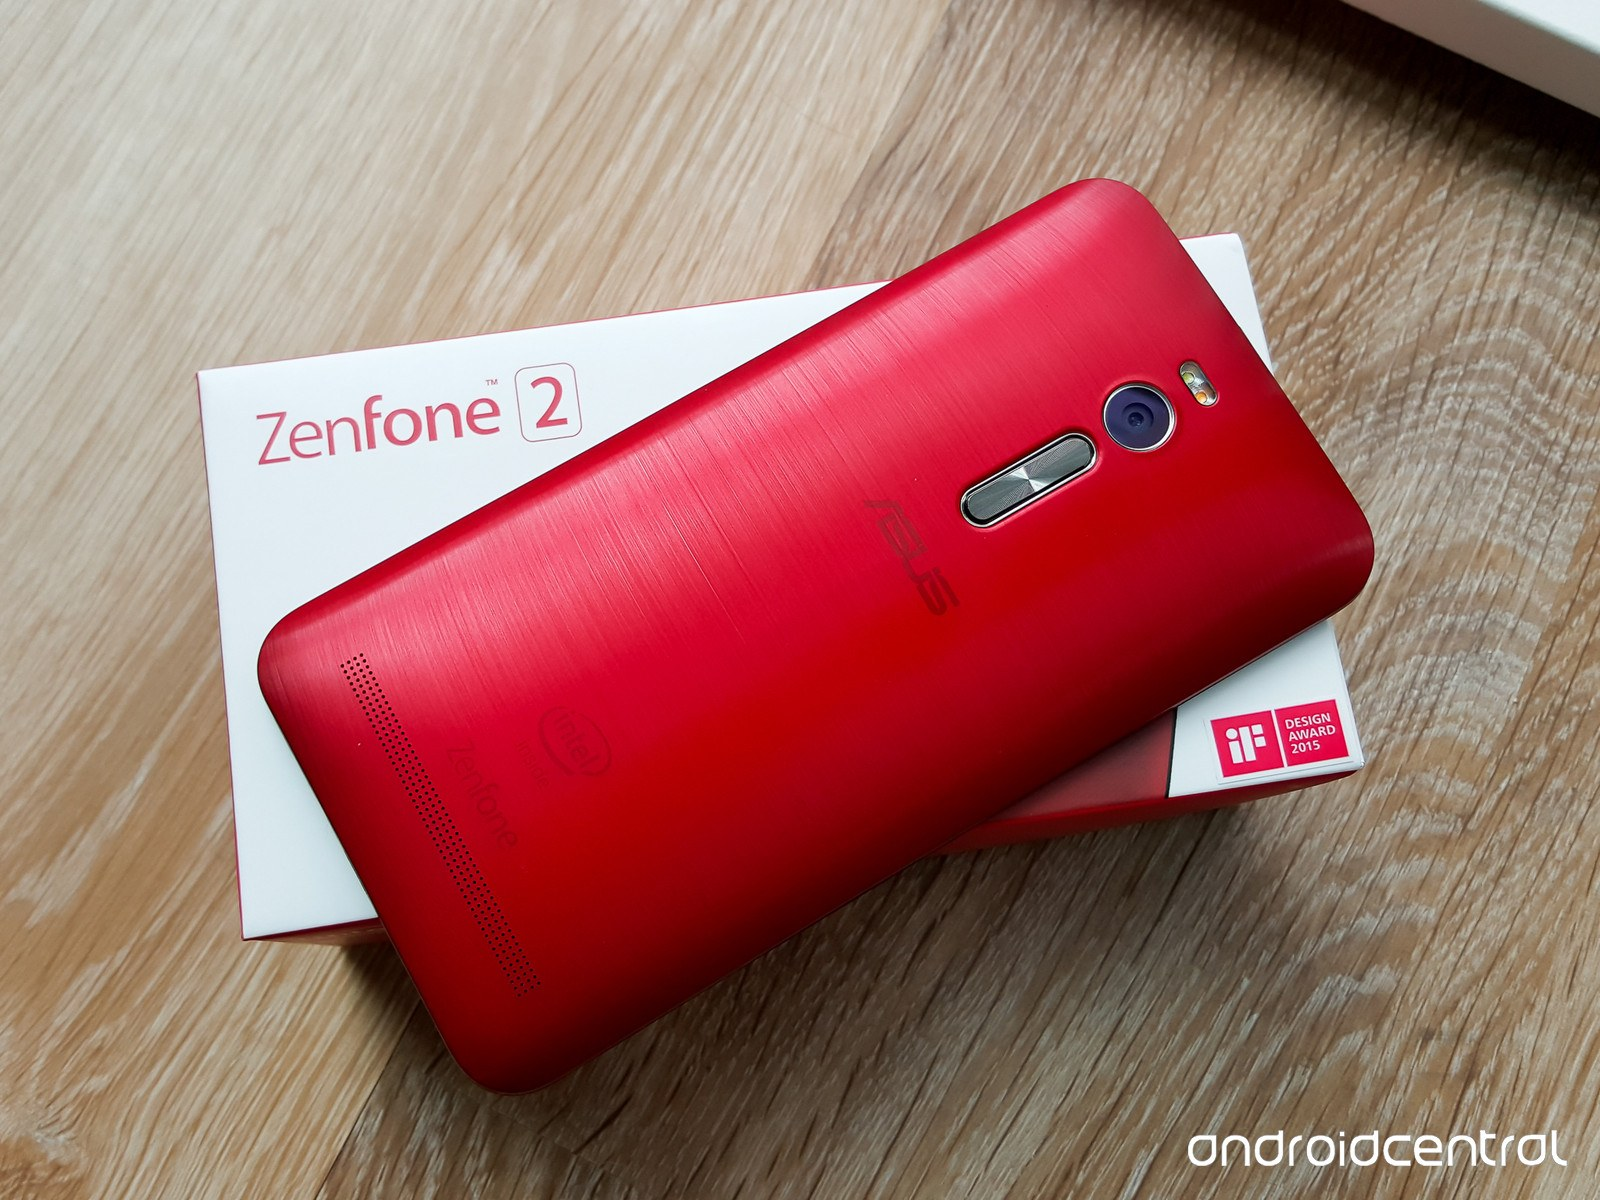 Gearbest coupon: ASUS ZenFone 2 (ZE551ML) 4/16GB in offerta a 140€ circa